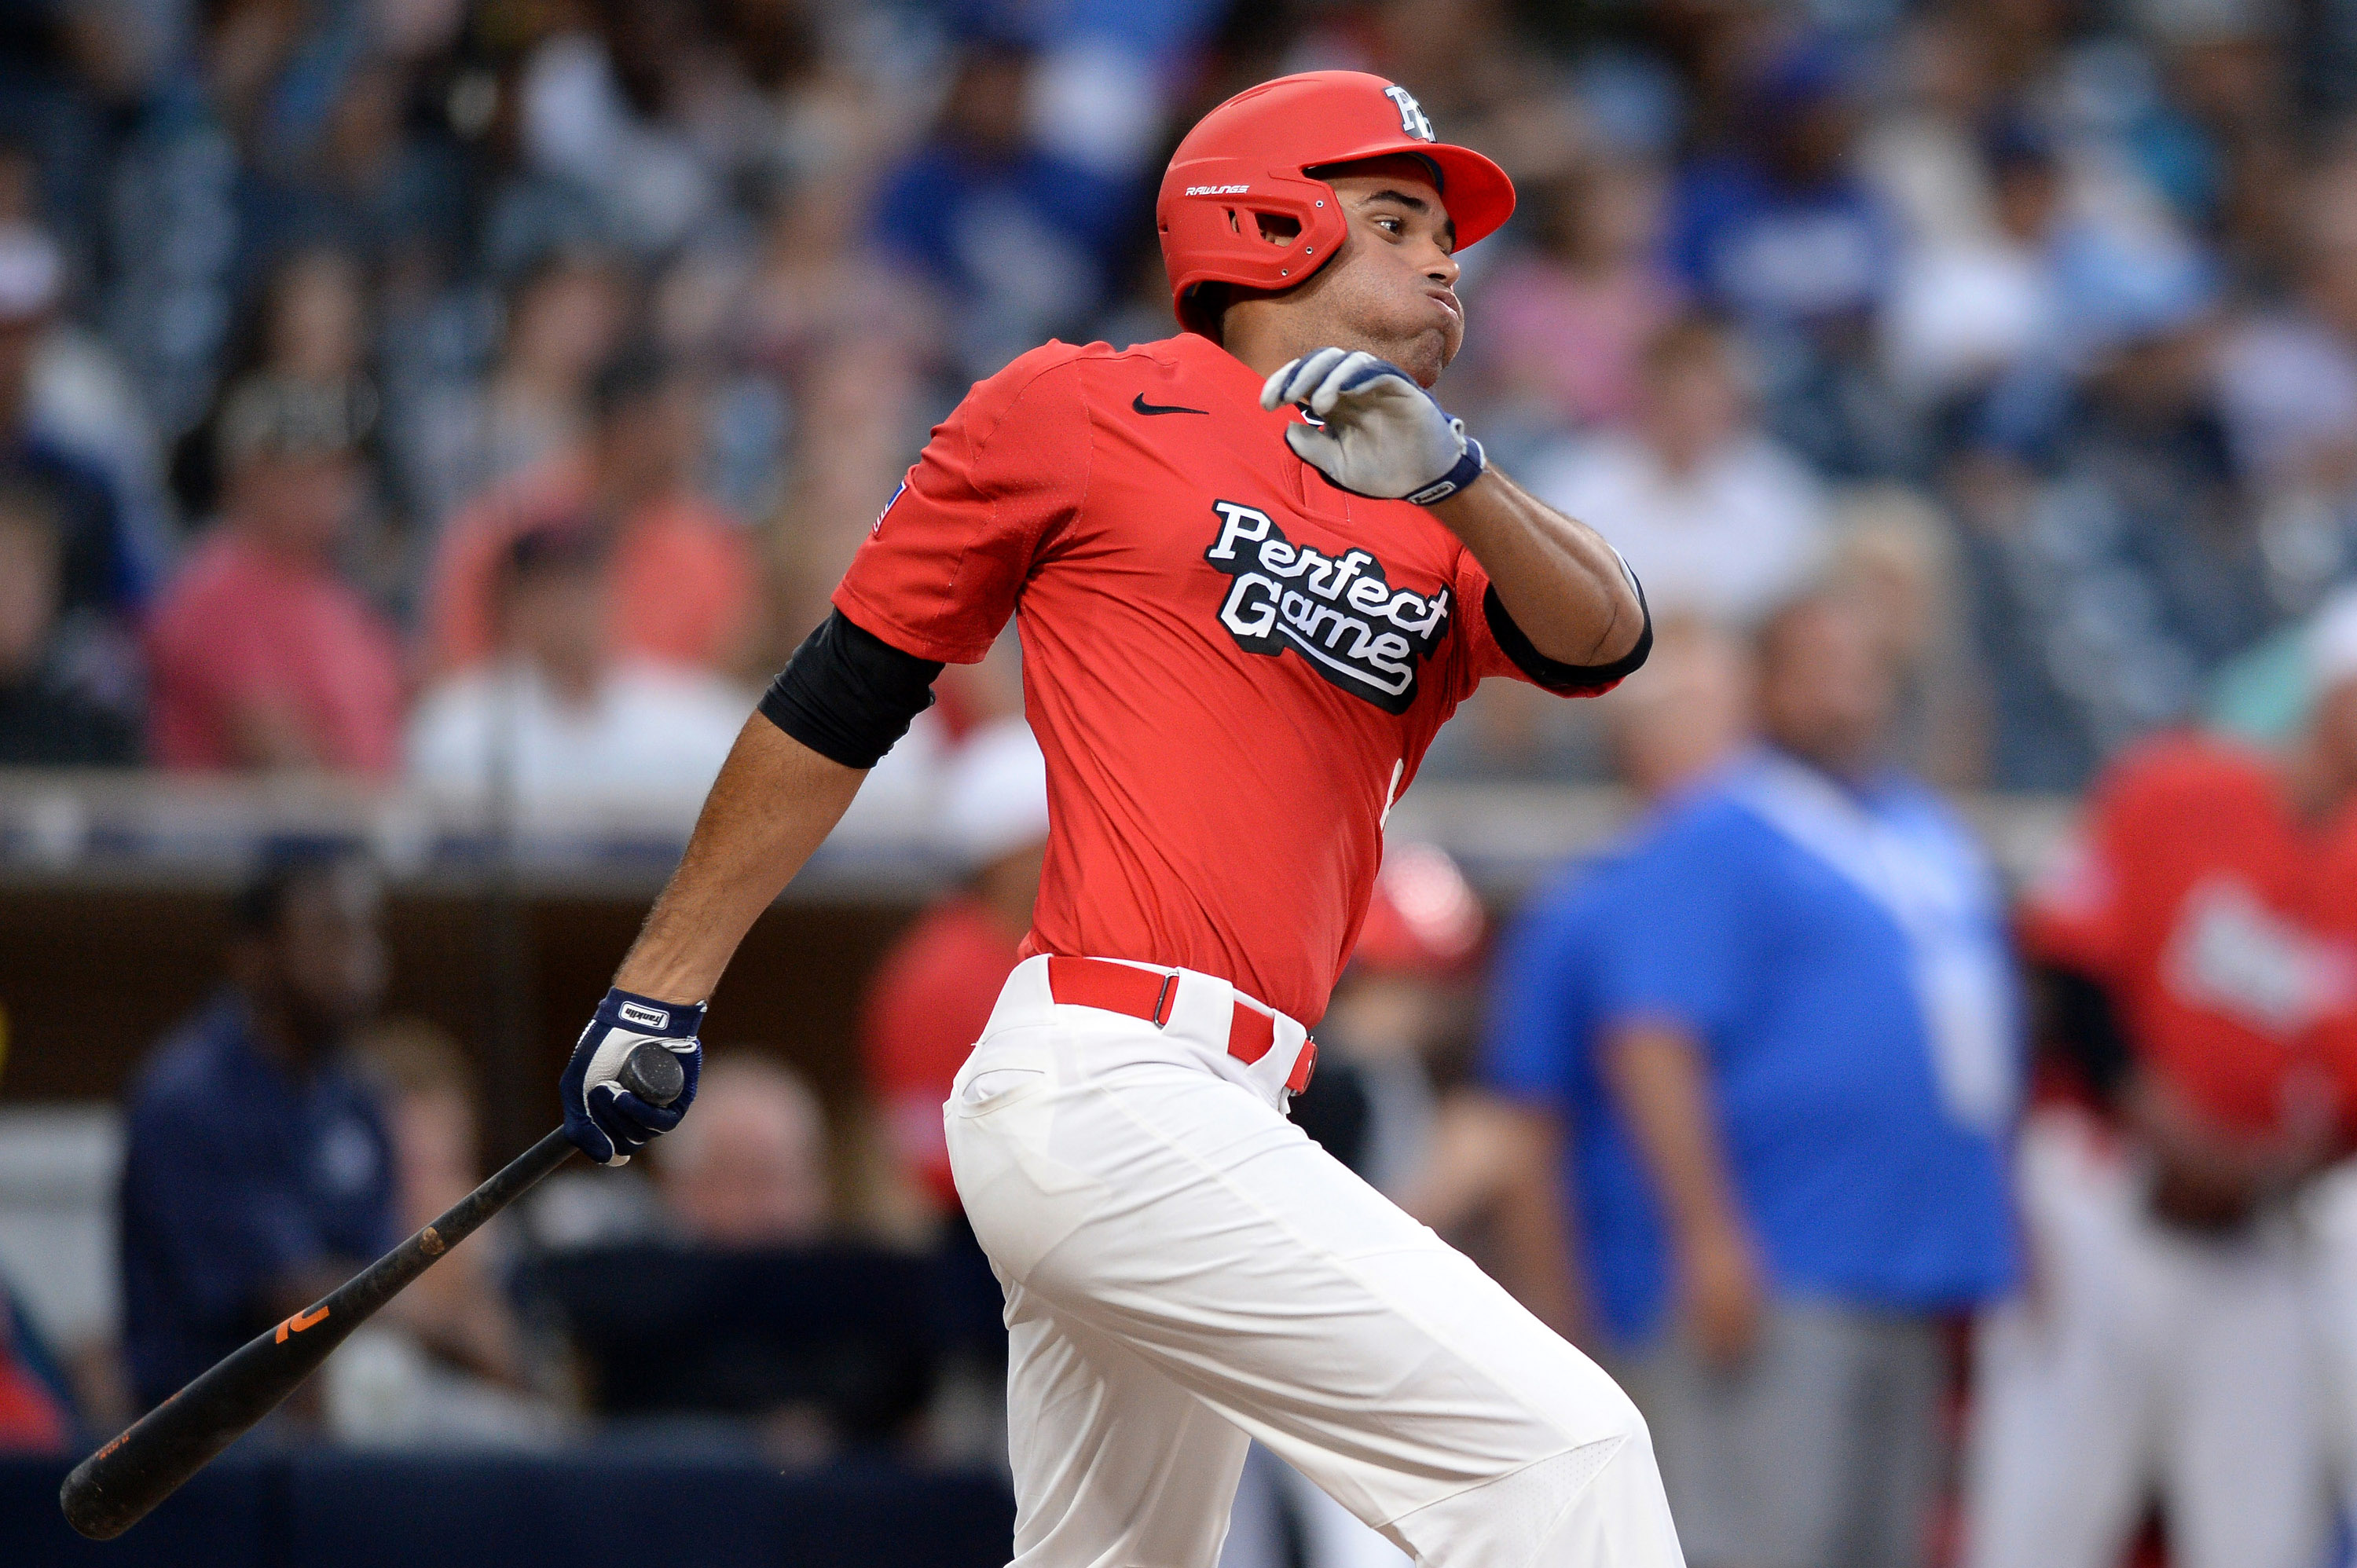 Meet the Fifth Overall Pick of the 2019 MLB Draft: Riley Greene